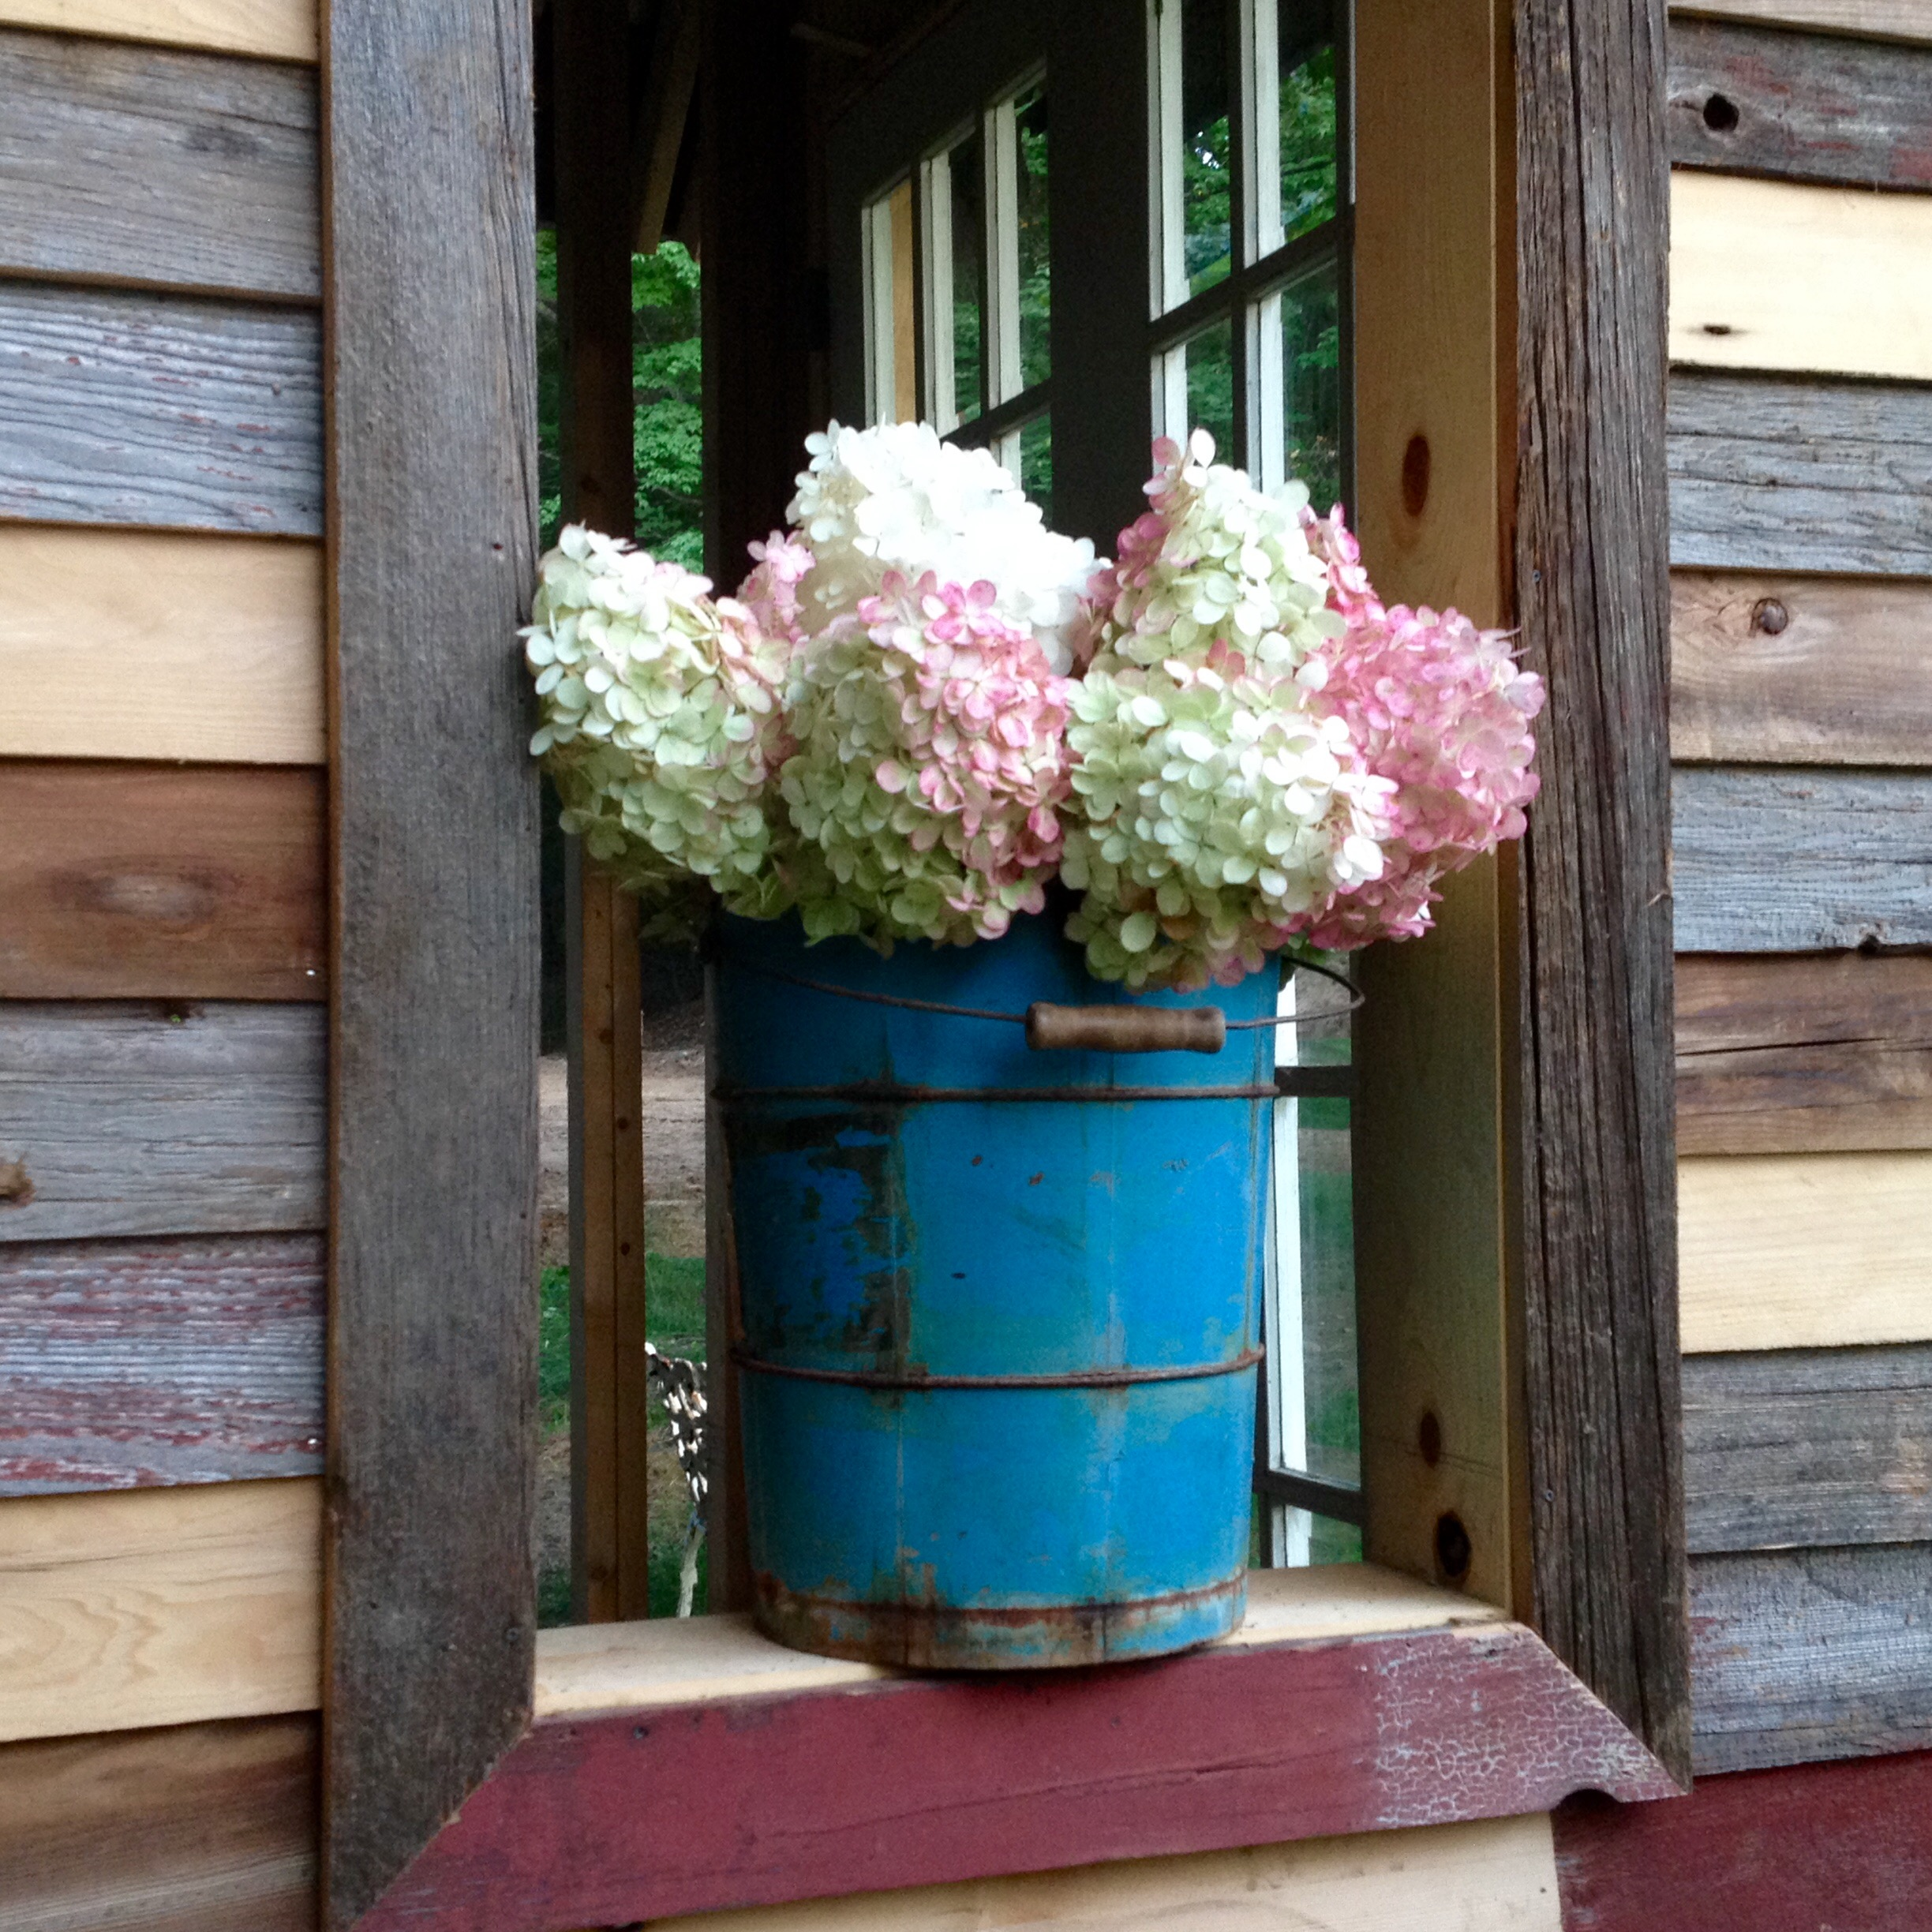 Upcycled garden shed salvage sister and mister for Upcycled garden projects from junk